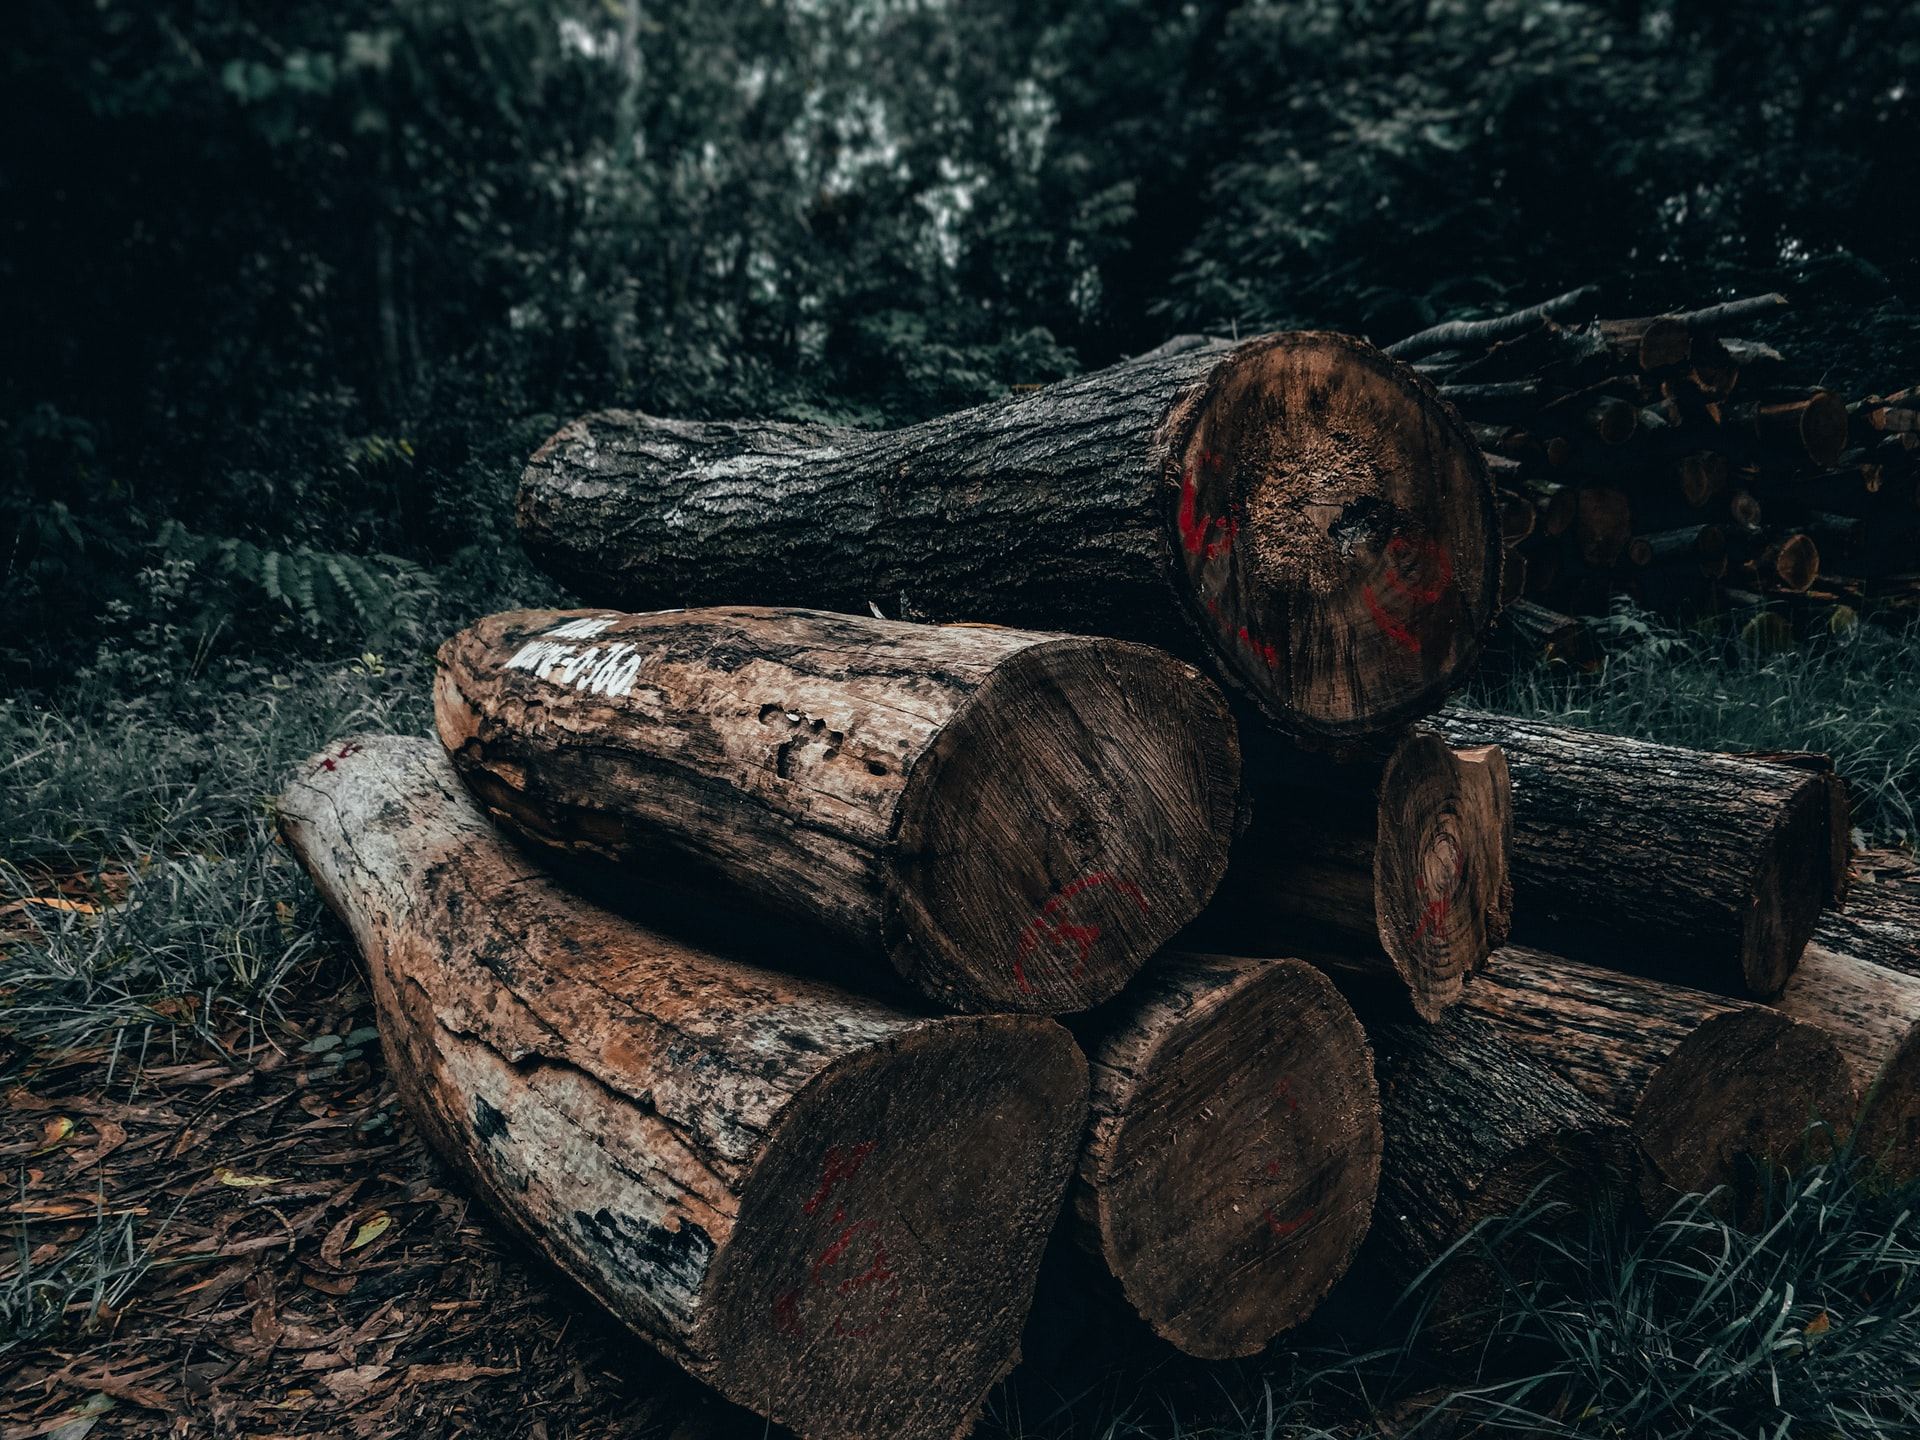 Solutions to deforestation